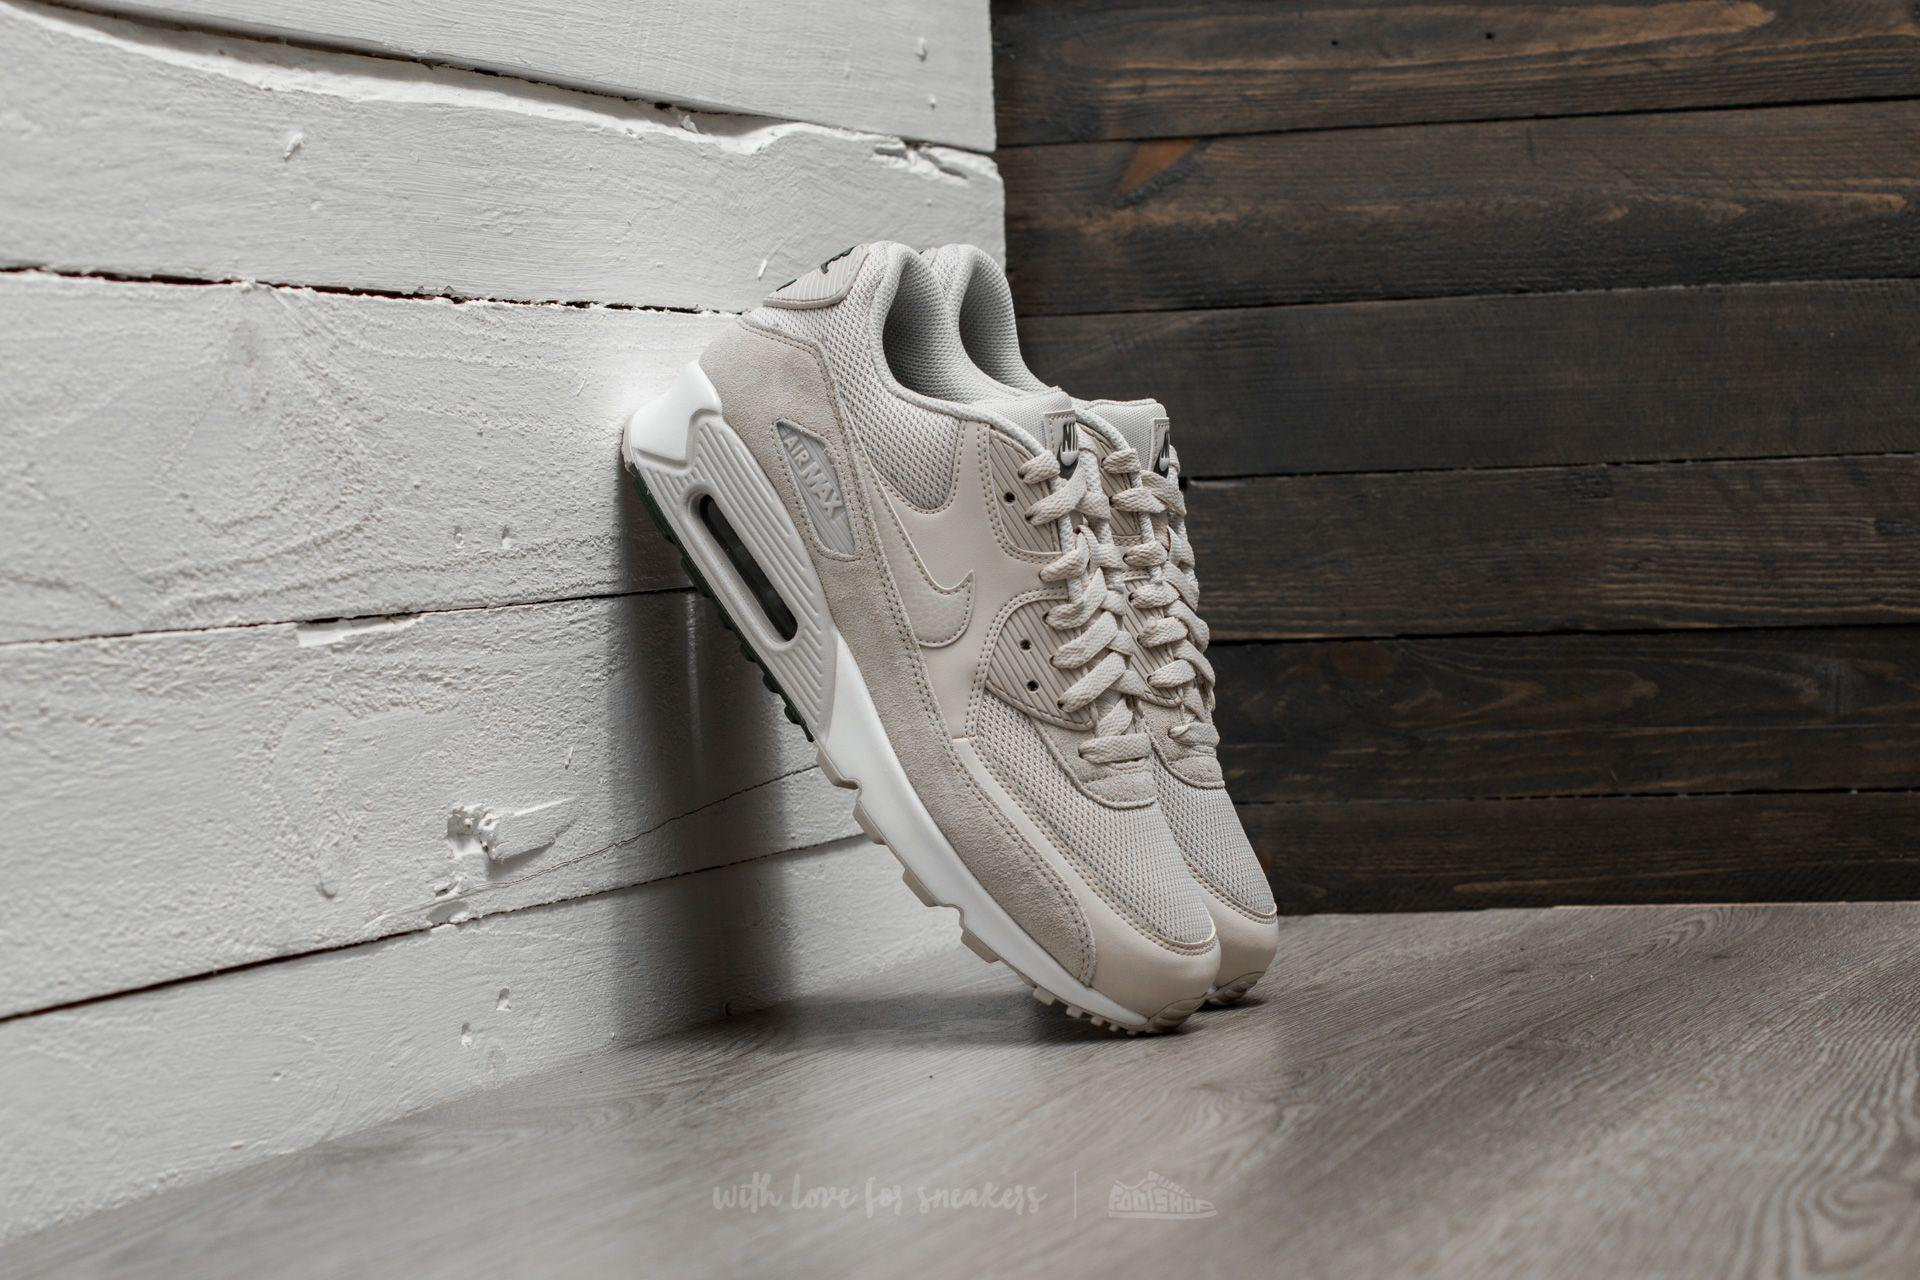 44060dcd5e Nike Air Max 90 Essential Light Orewood Brown/ Light Orewood Brown ...